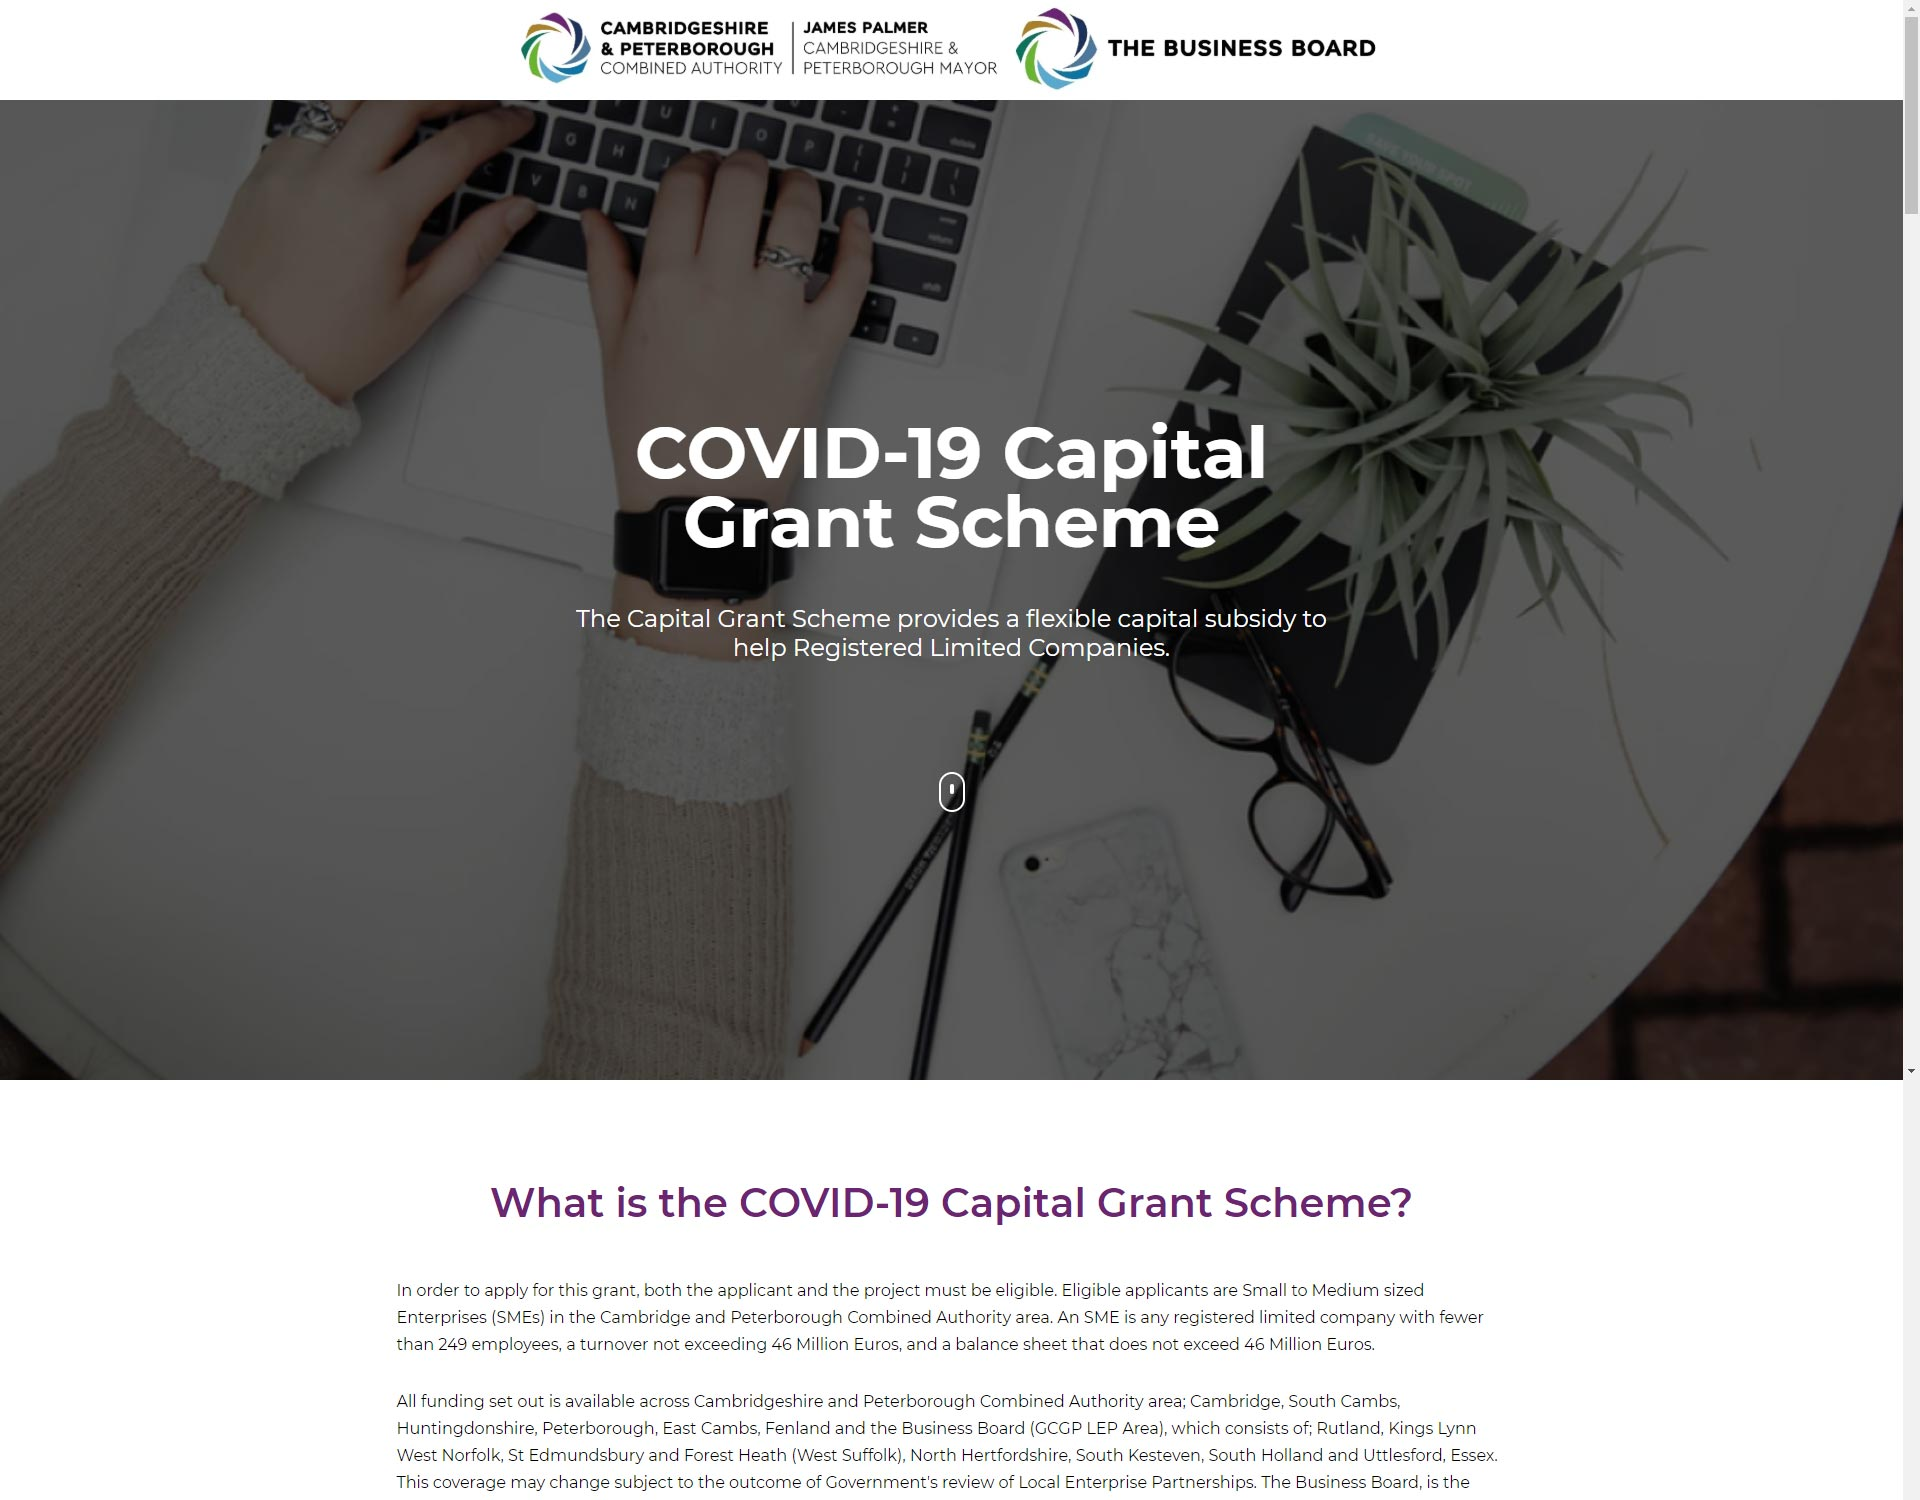 COVID-19-Capital-Grant-Scheme-Screenshot-Lead-Genera